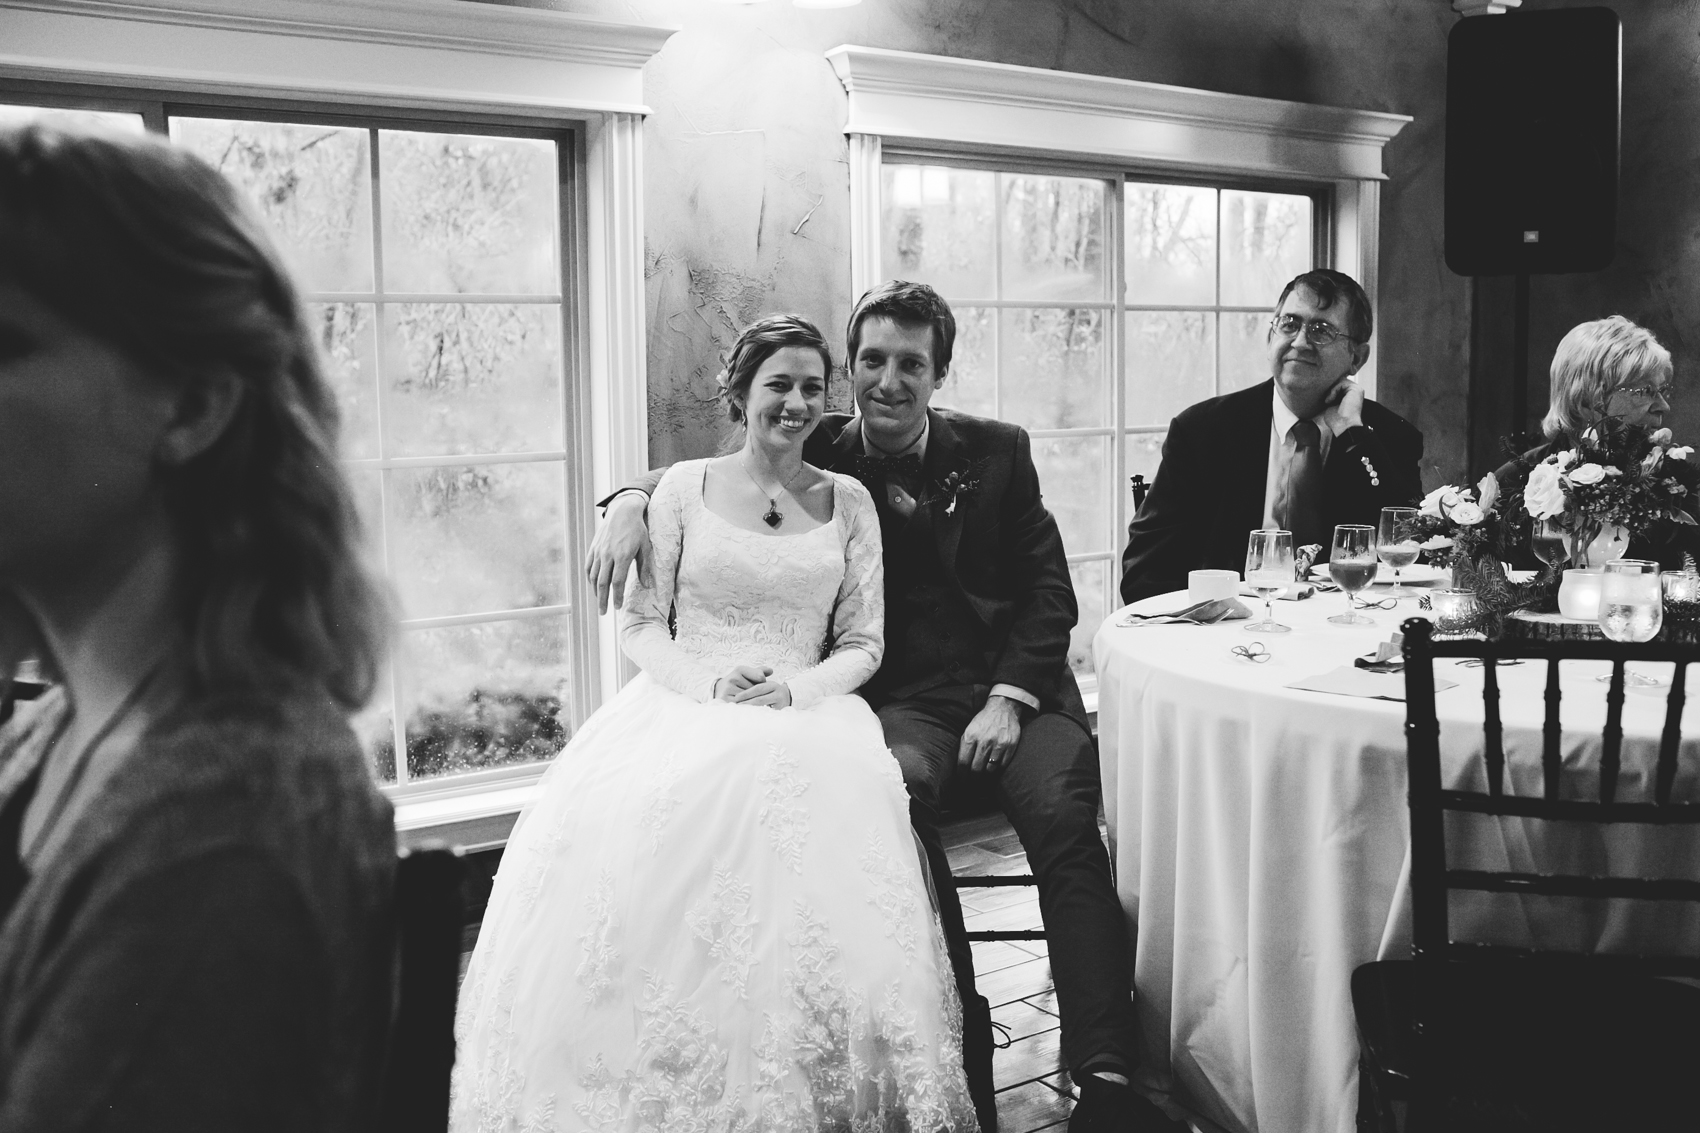 Cameron&ErinsWedding12-27-15-81